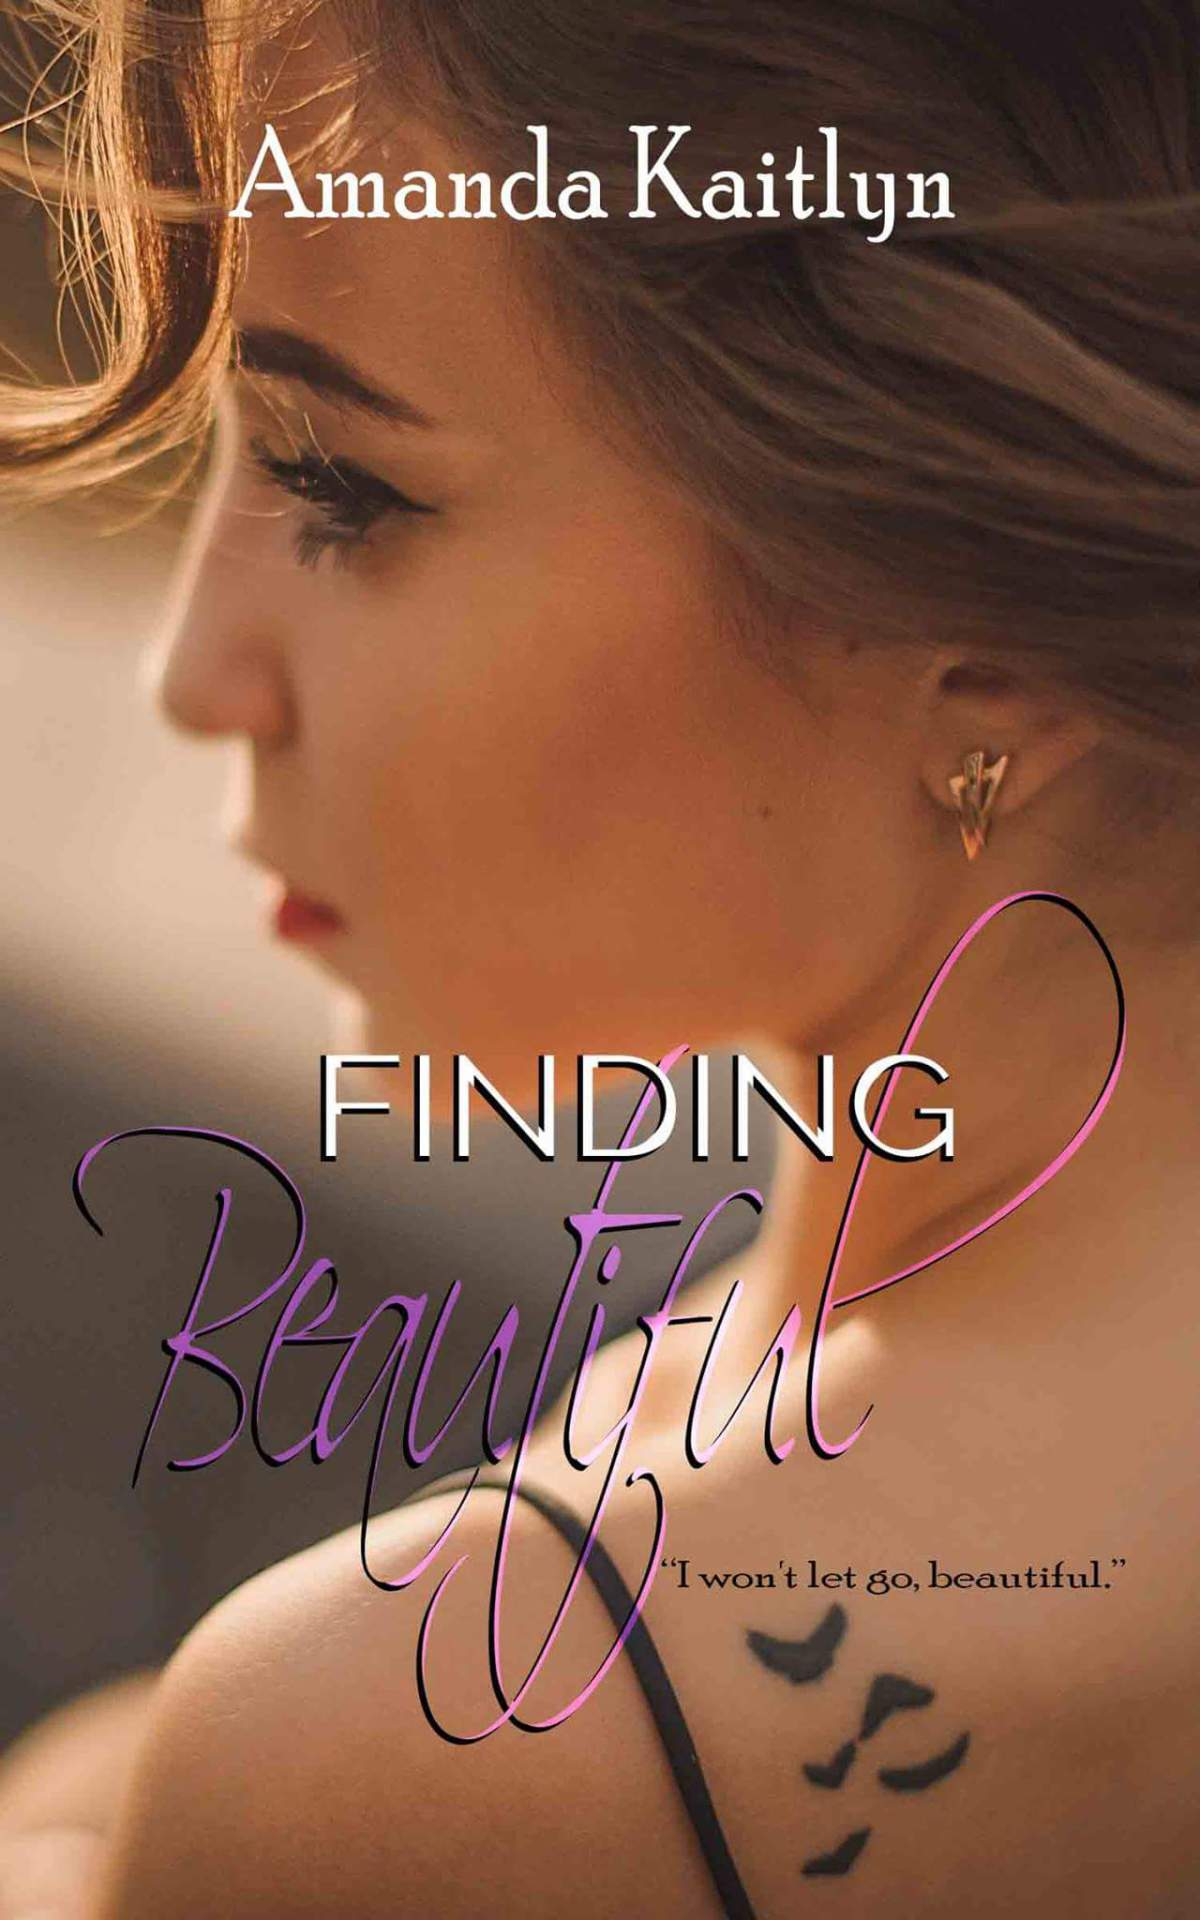 Finding Beautiful